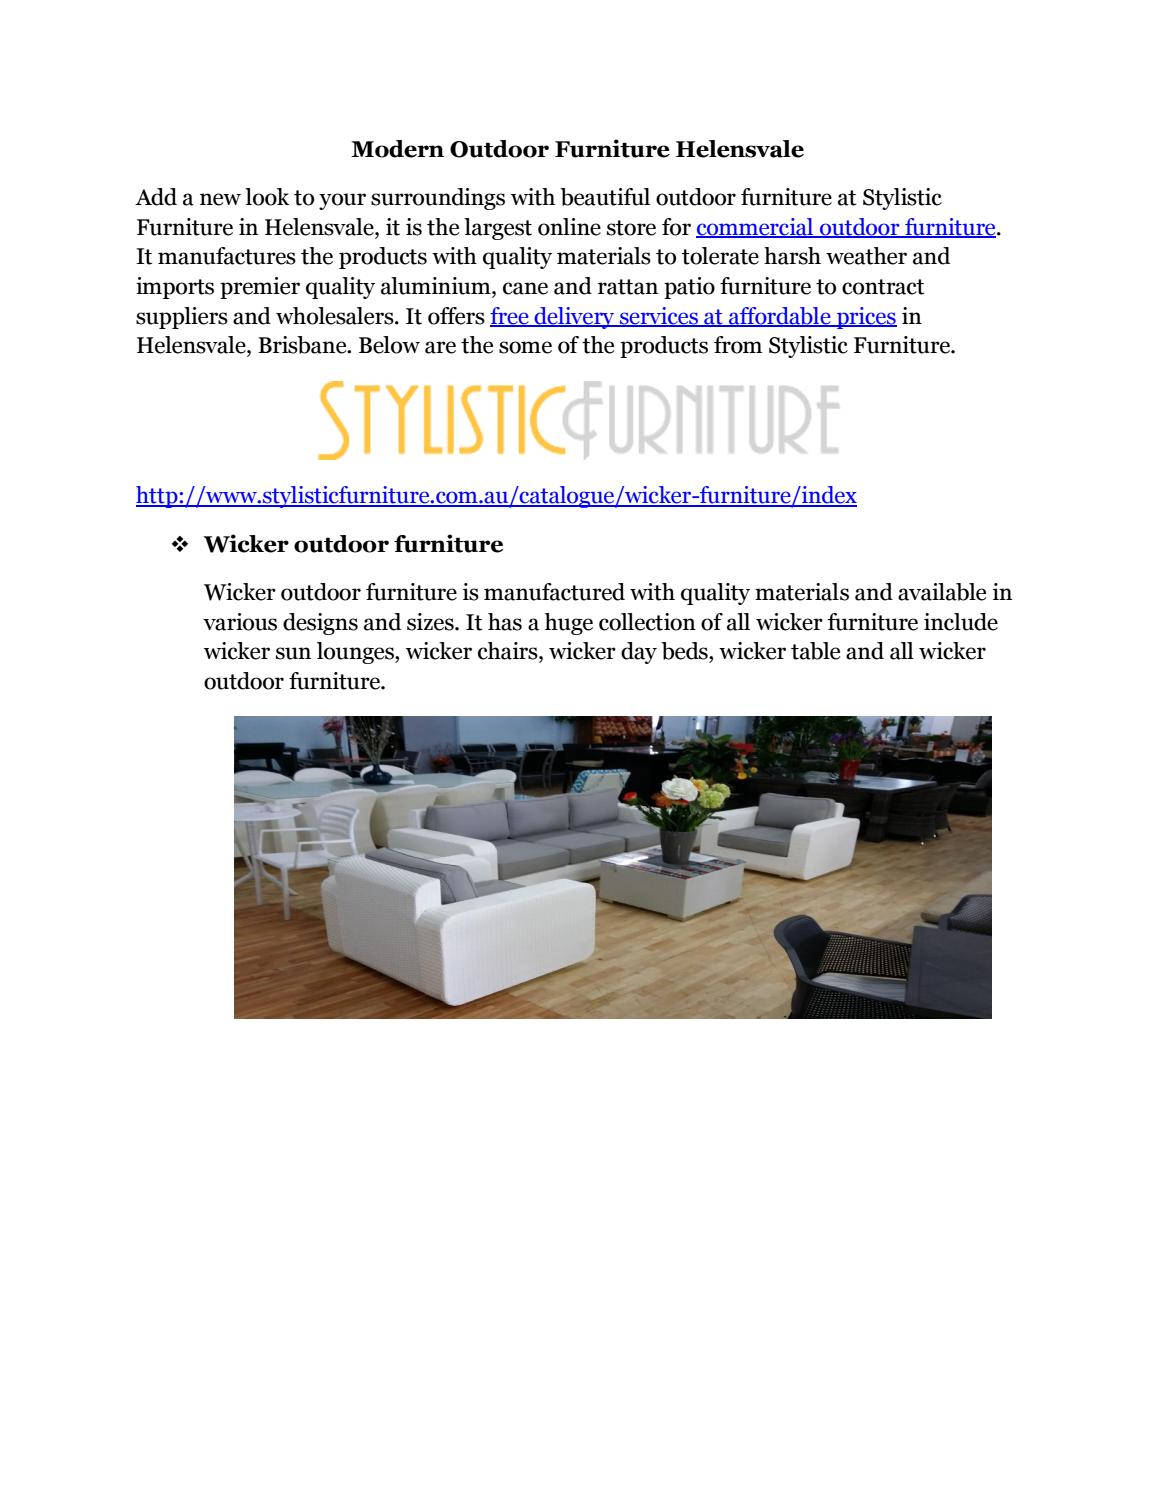 Modern outdoor furniture helensvale by moryhuins issuu